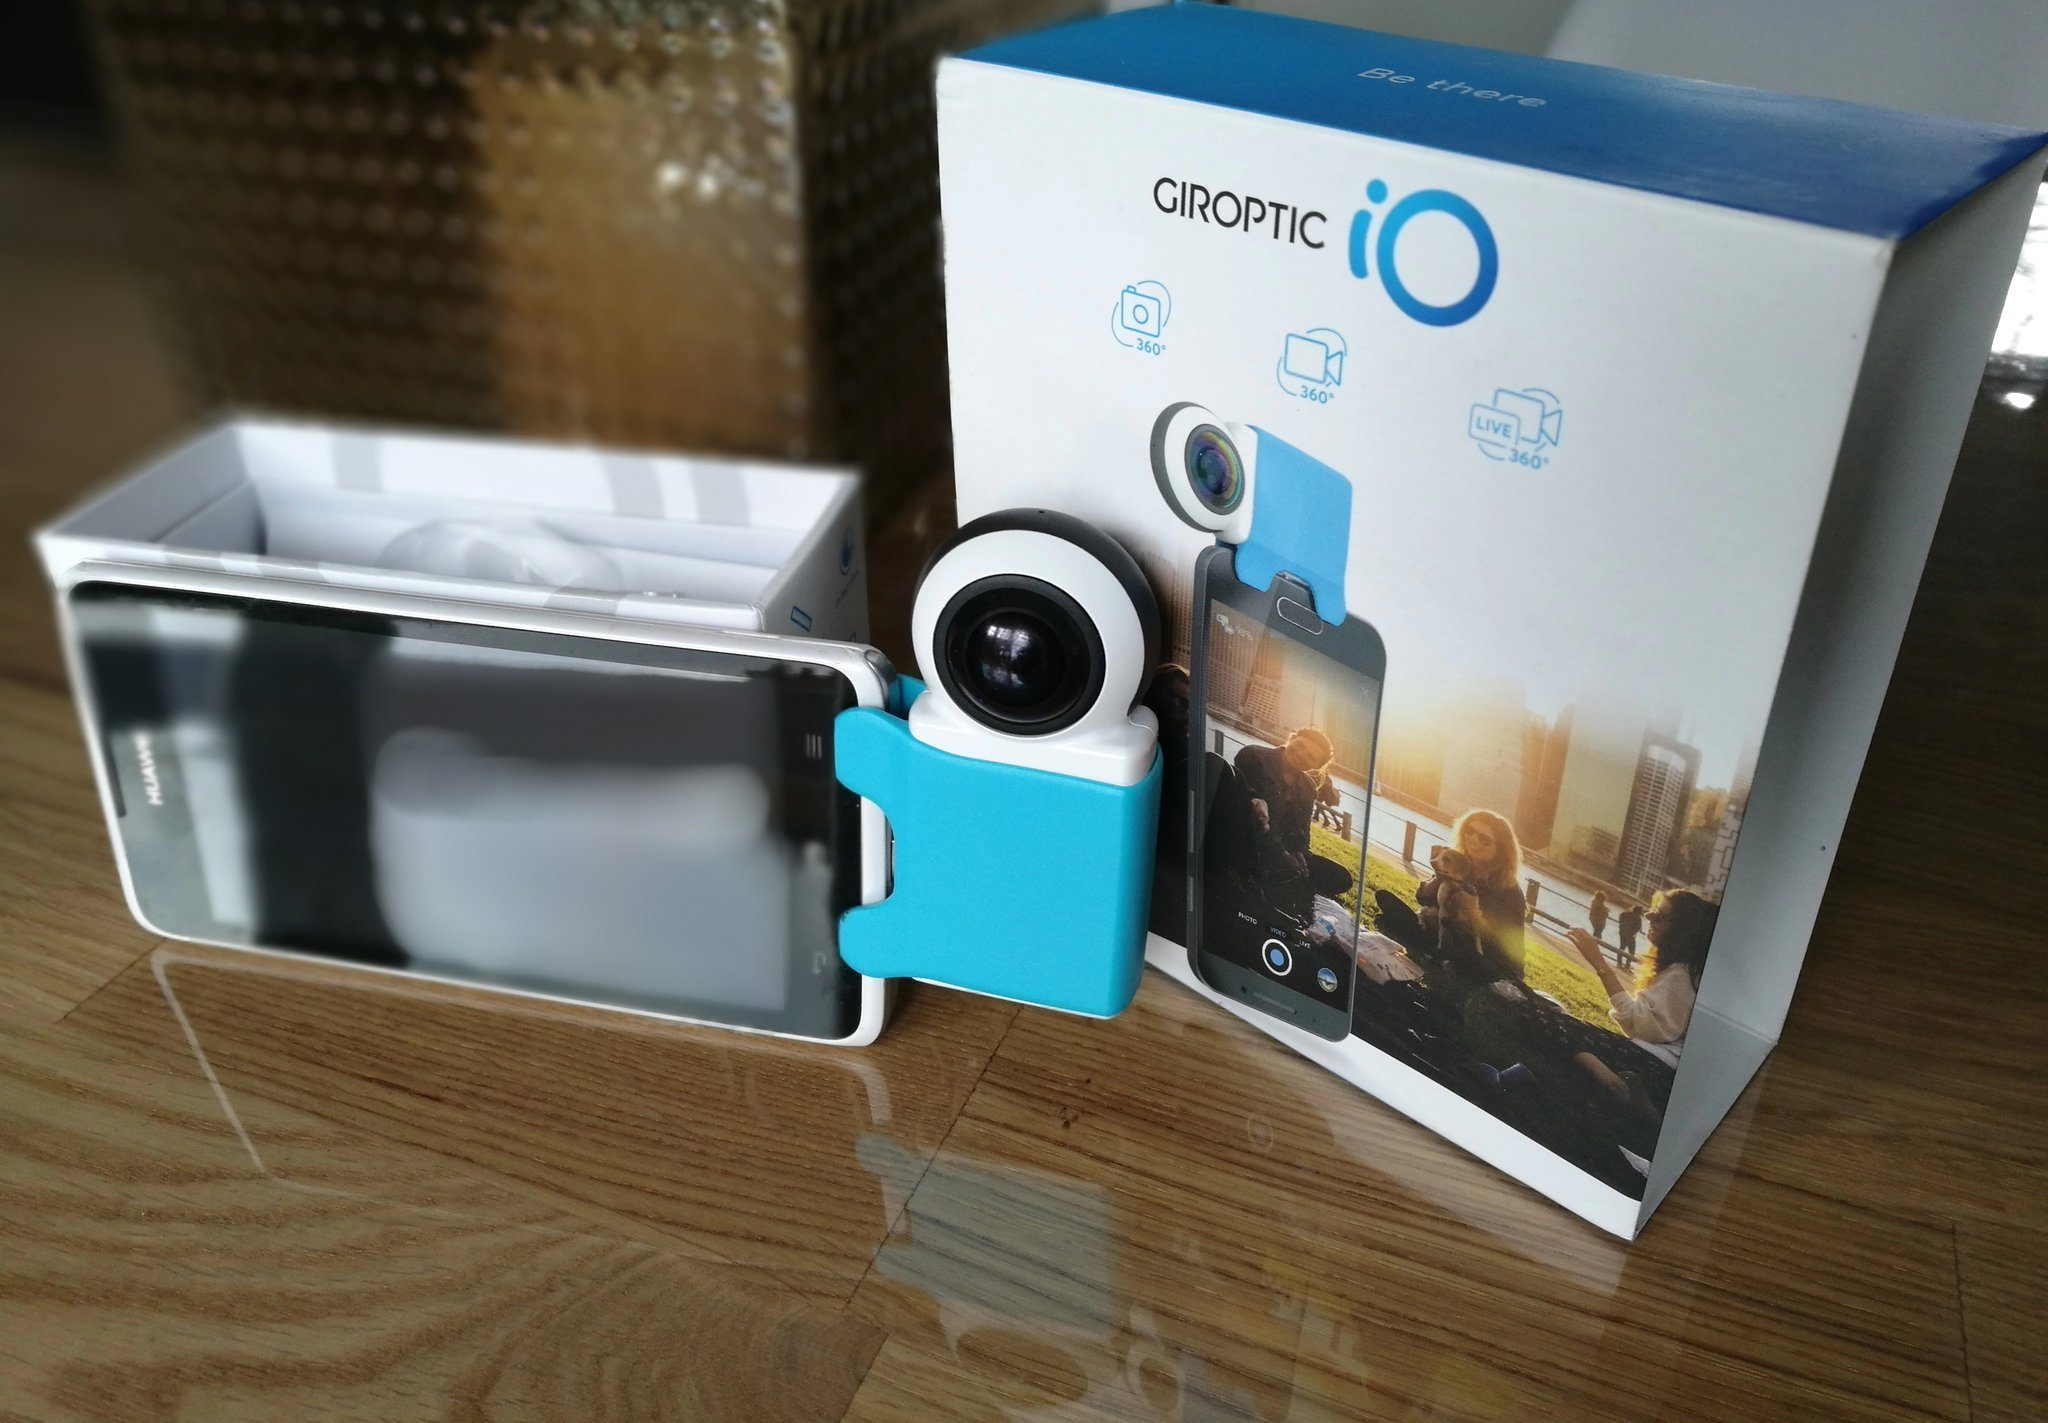 test giroptic io la cam ra 360 degr s pour android et ios. Black Bedroom Furniture Sets. Home Design Ideas